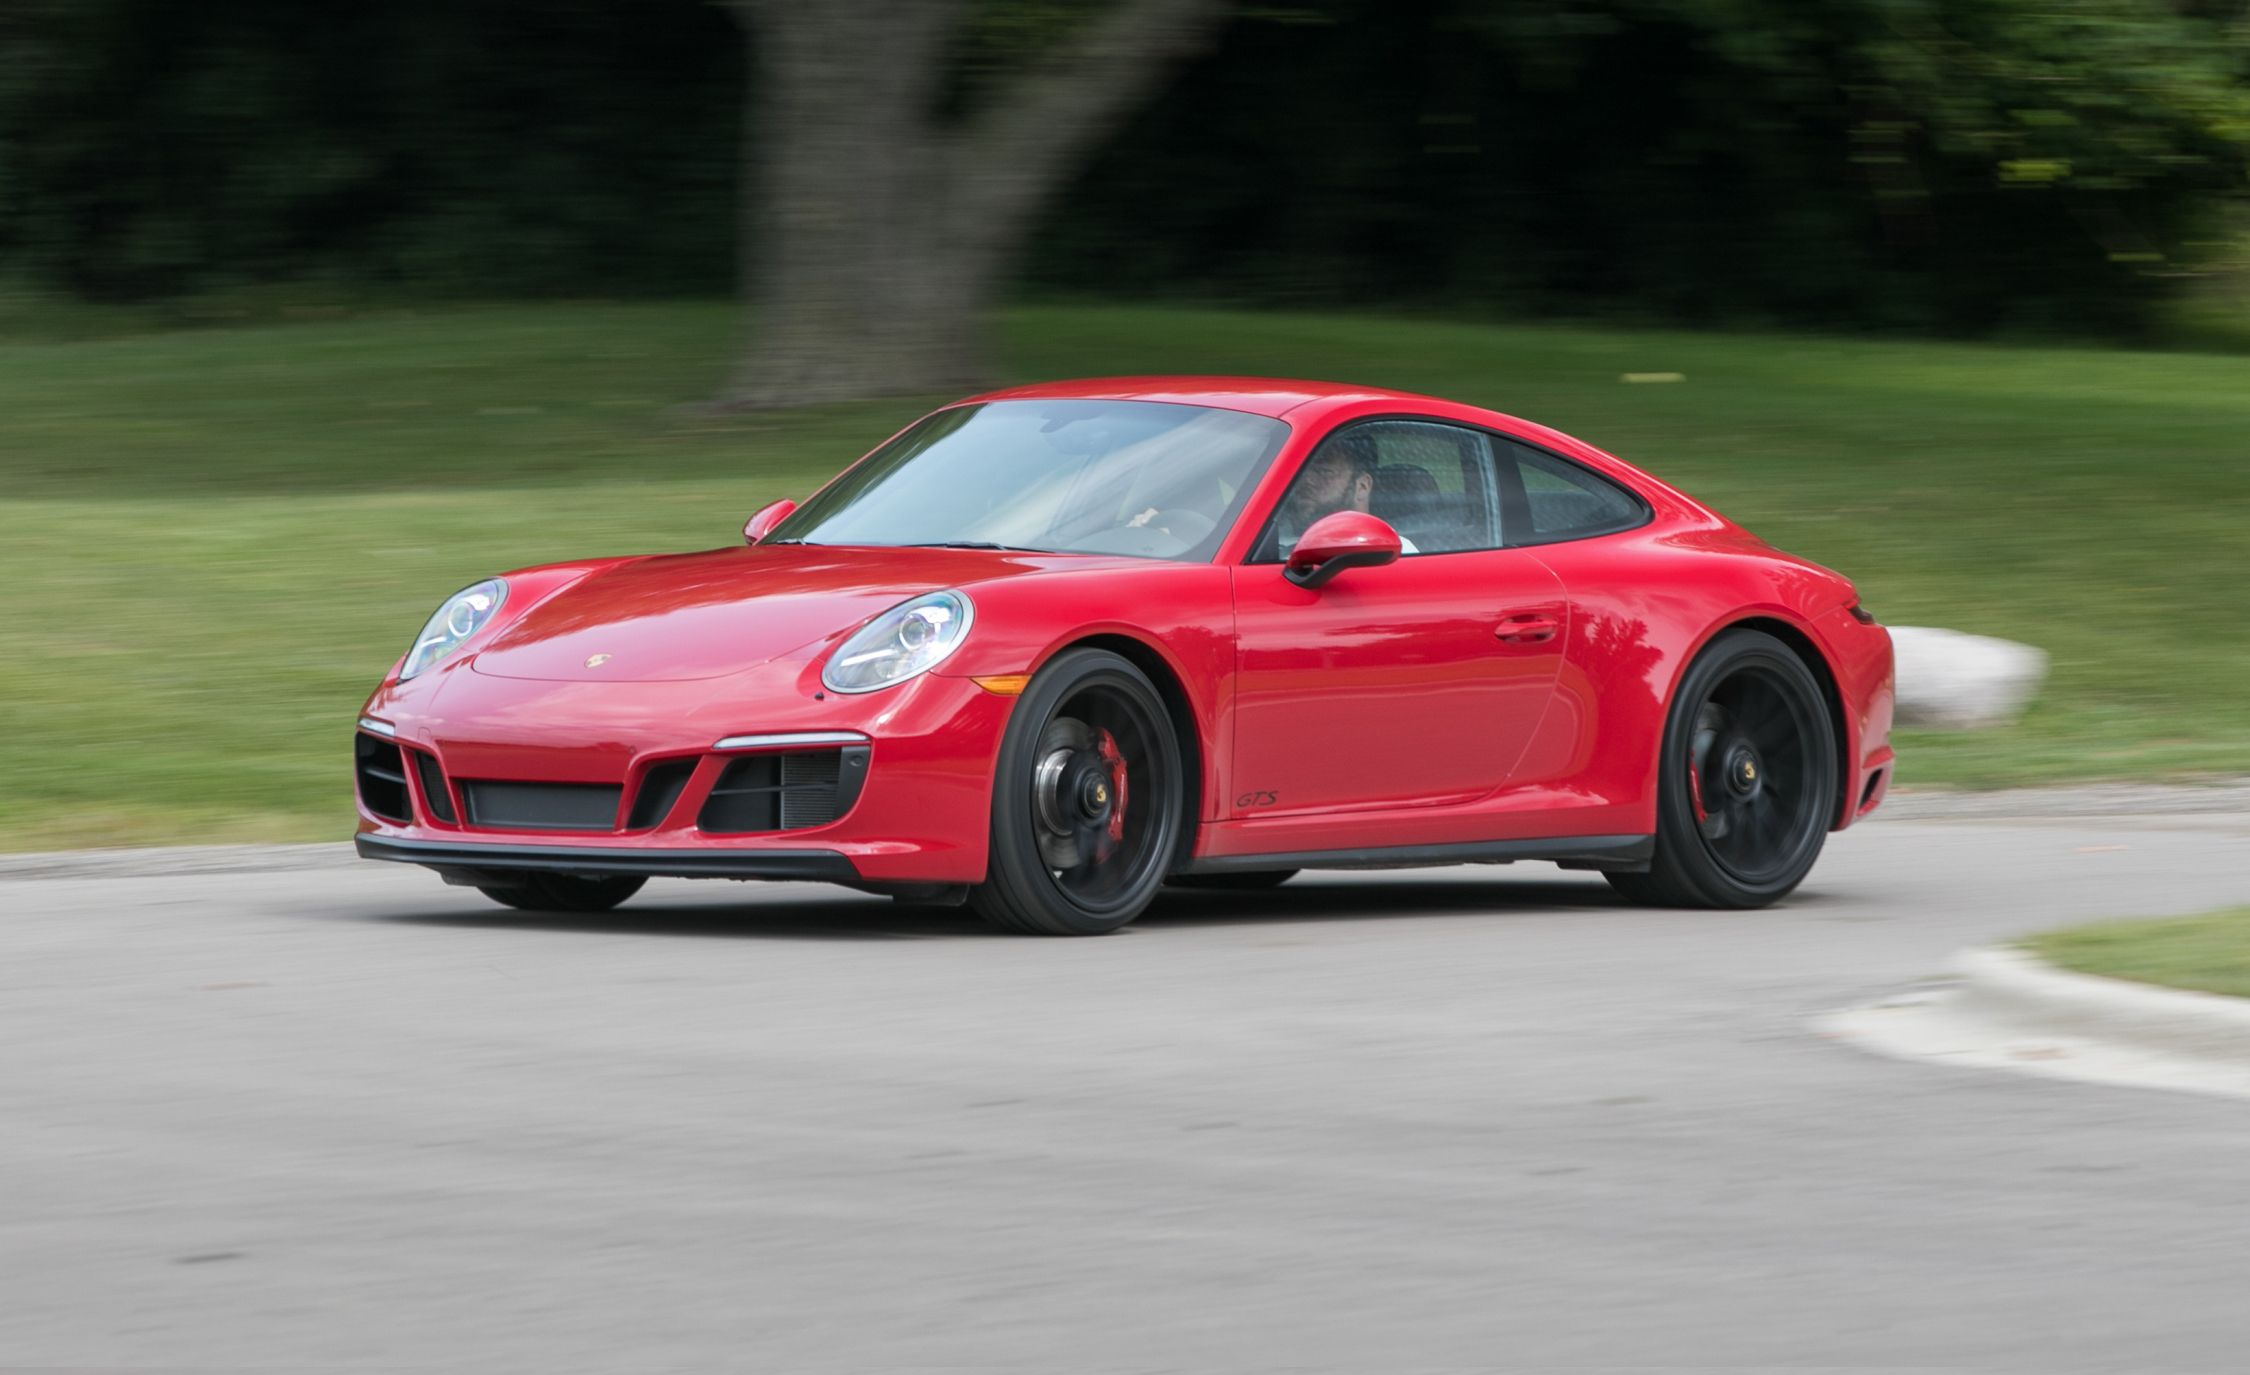 2020 porsche 911 reviews | porsche 911 price, photos, and specs